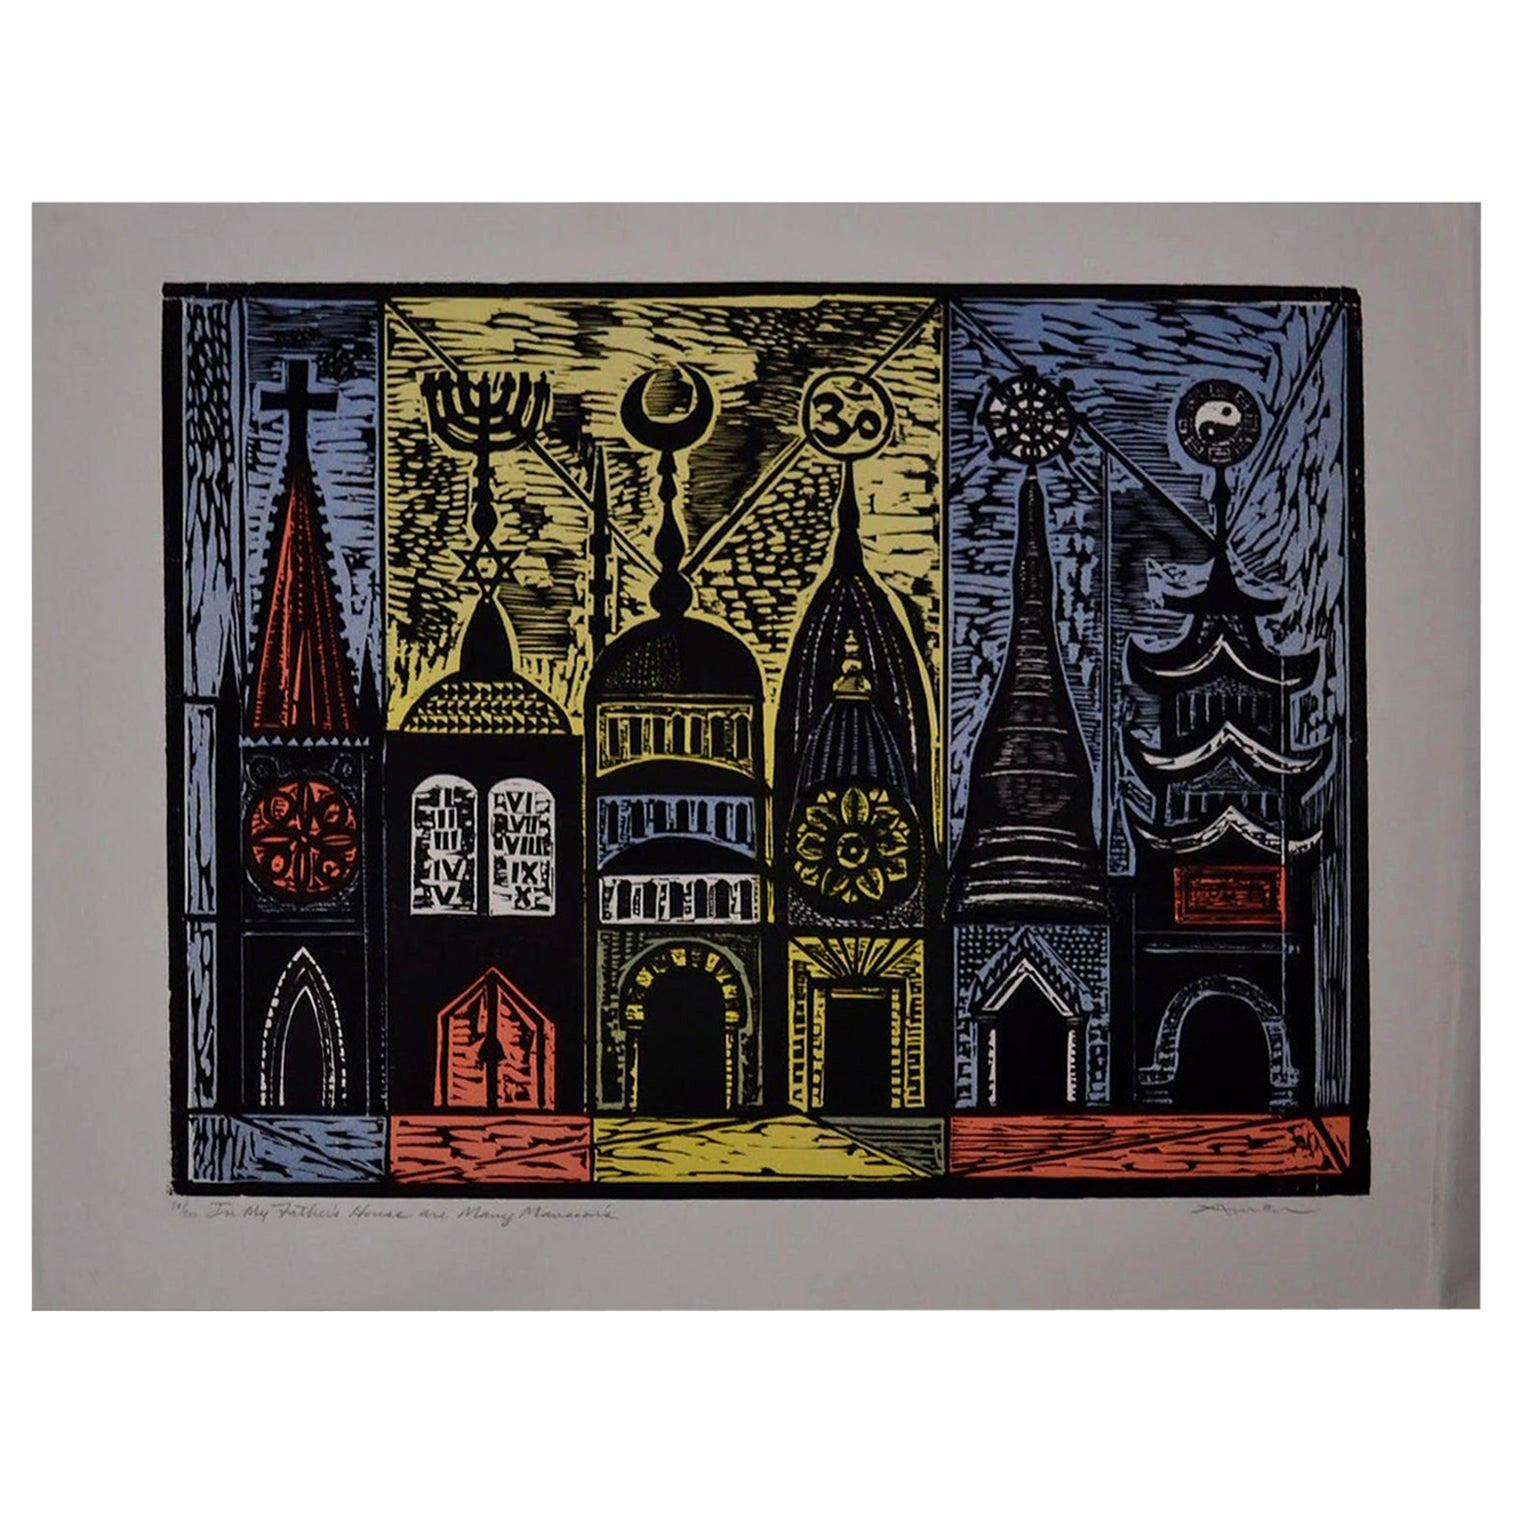 Irving Amen Signed Limited Edition Print in My Father's House Are Many Mansions